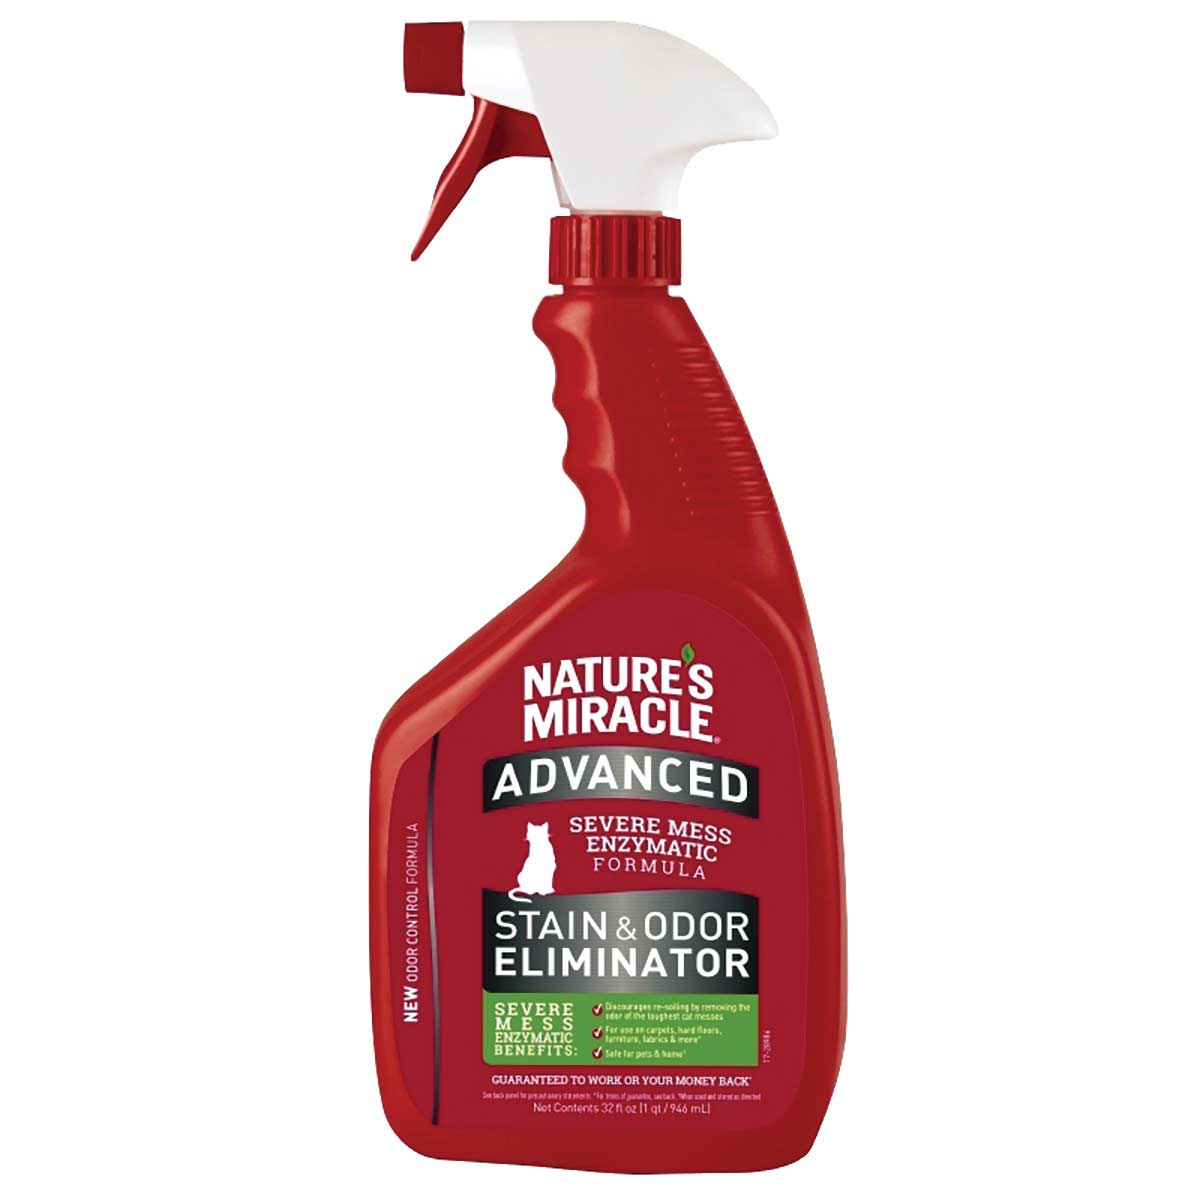 24 oz Nature's Miracle Advanced Formula for Stain & Odor Remover in the House